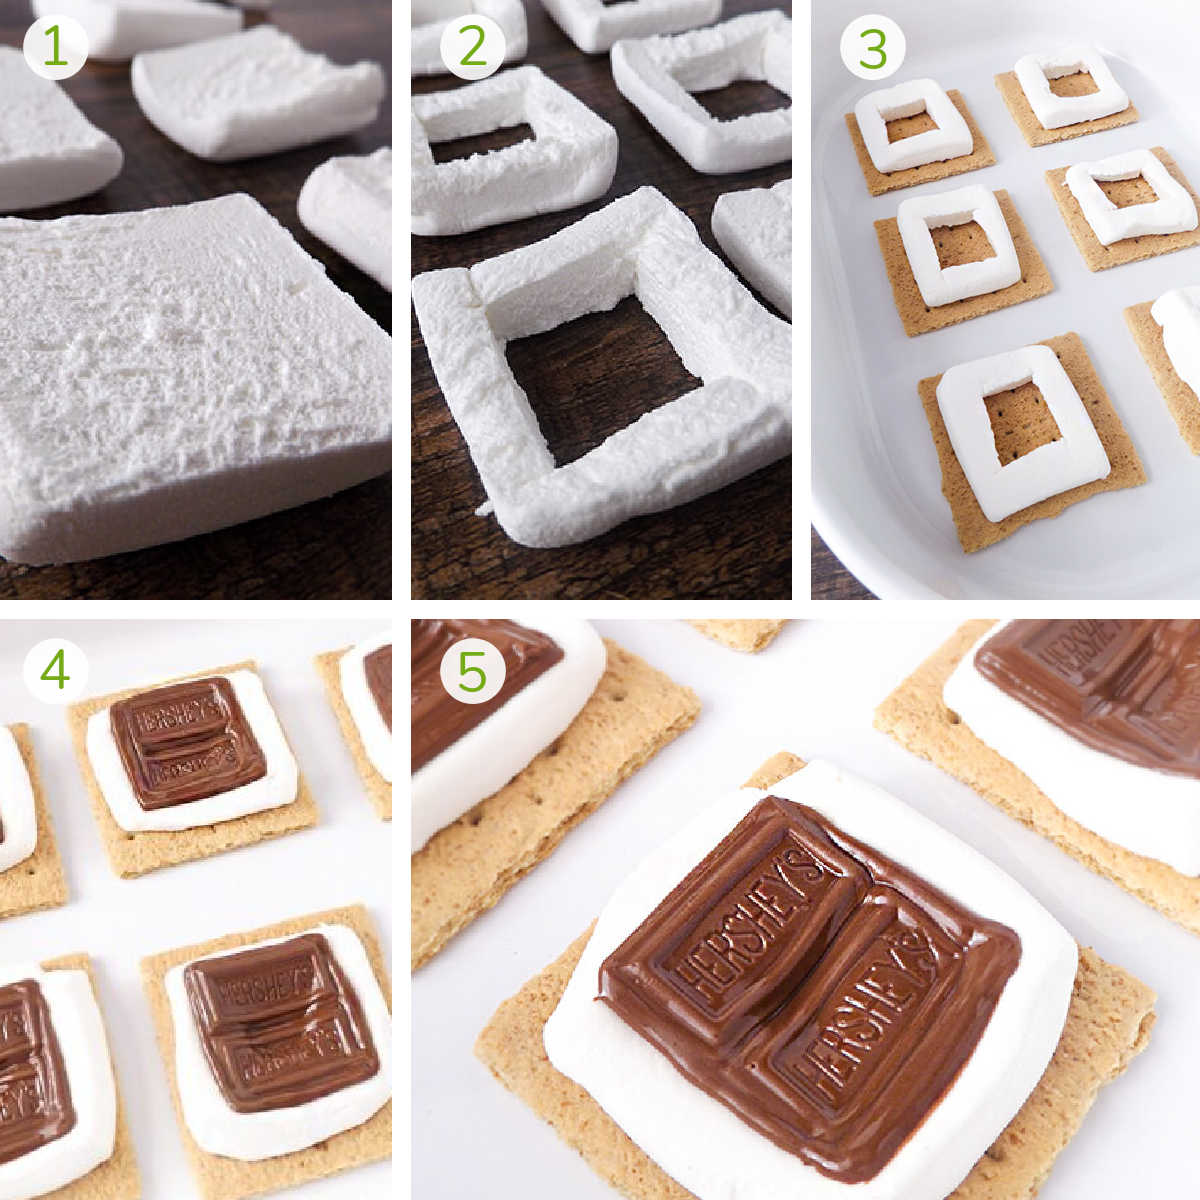 process photos showing how to cur the marshmallow, place it on the graham cracker and fill it with chocolate.